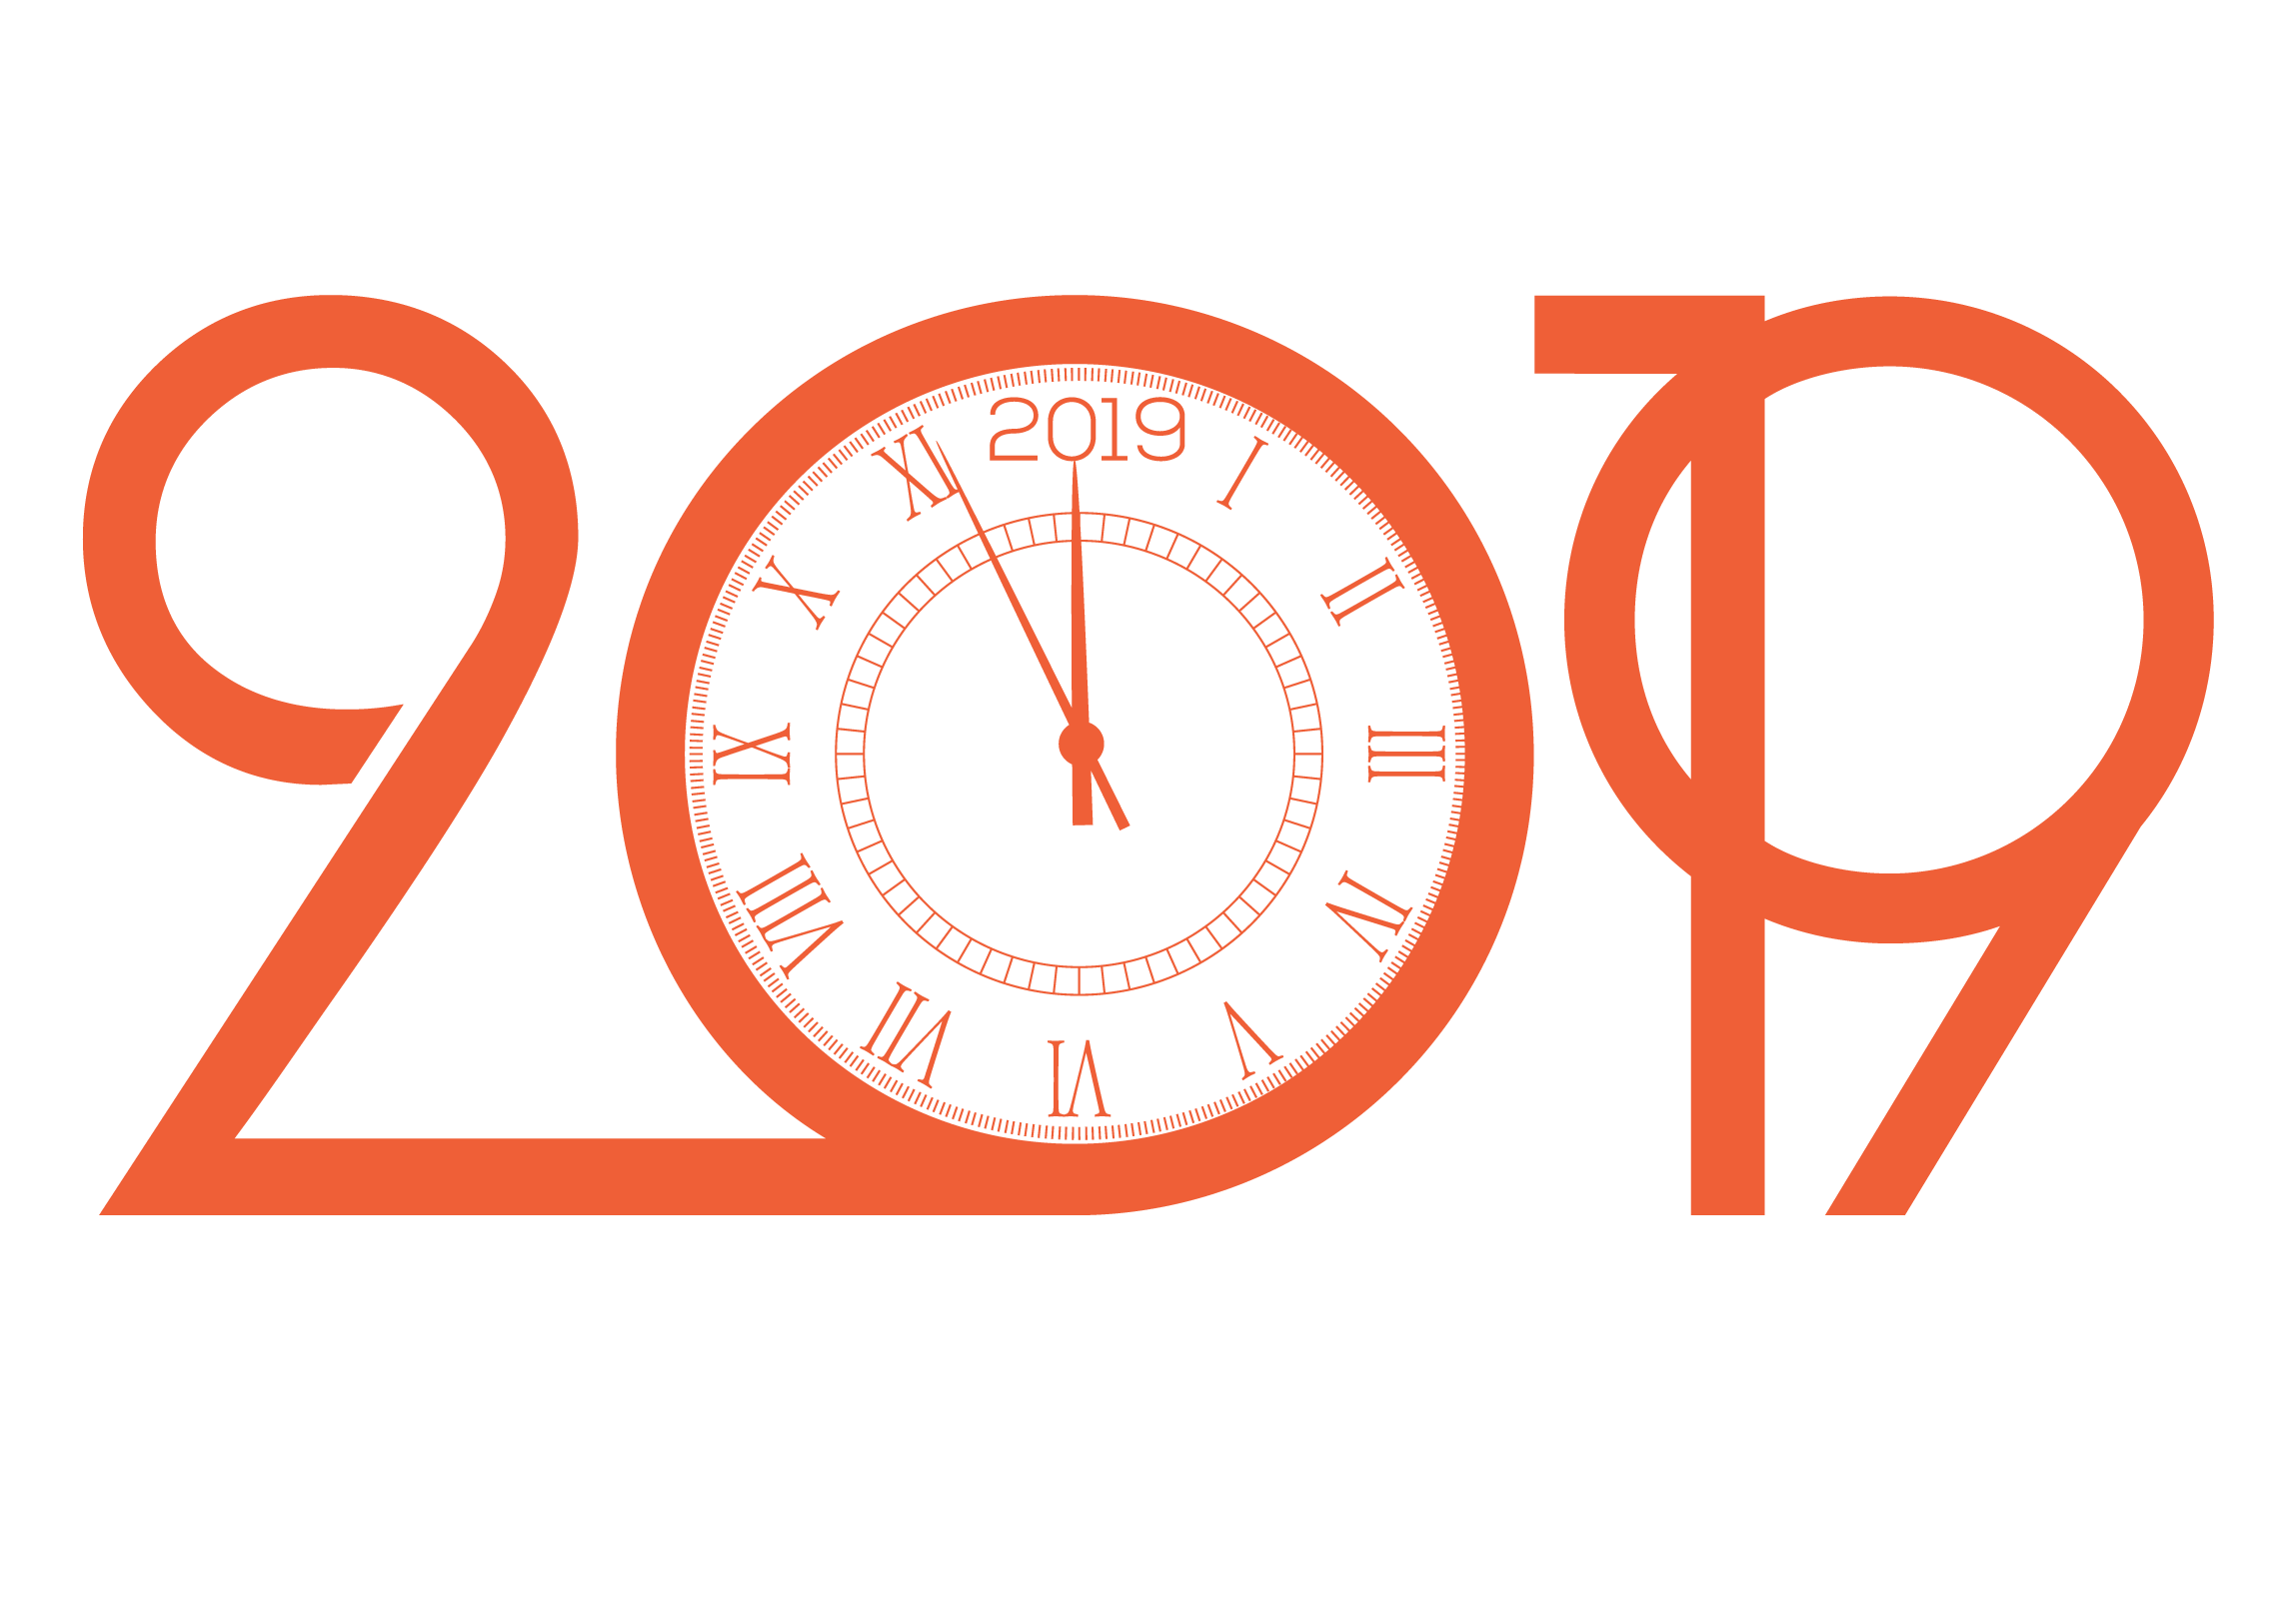 Illustration of a clock inside the year 2019